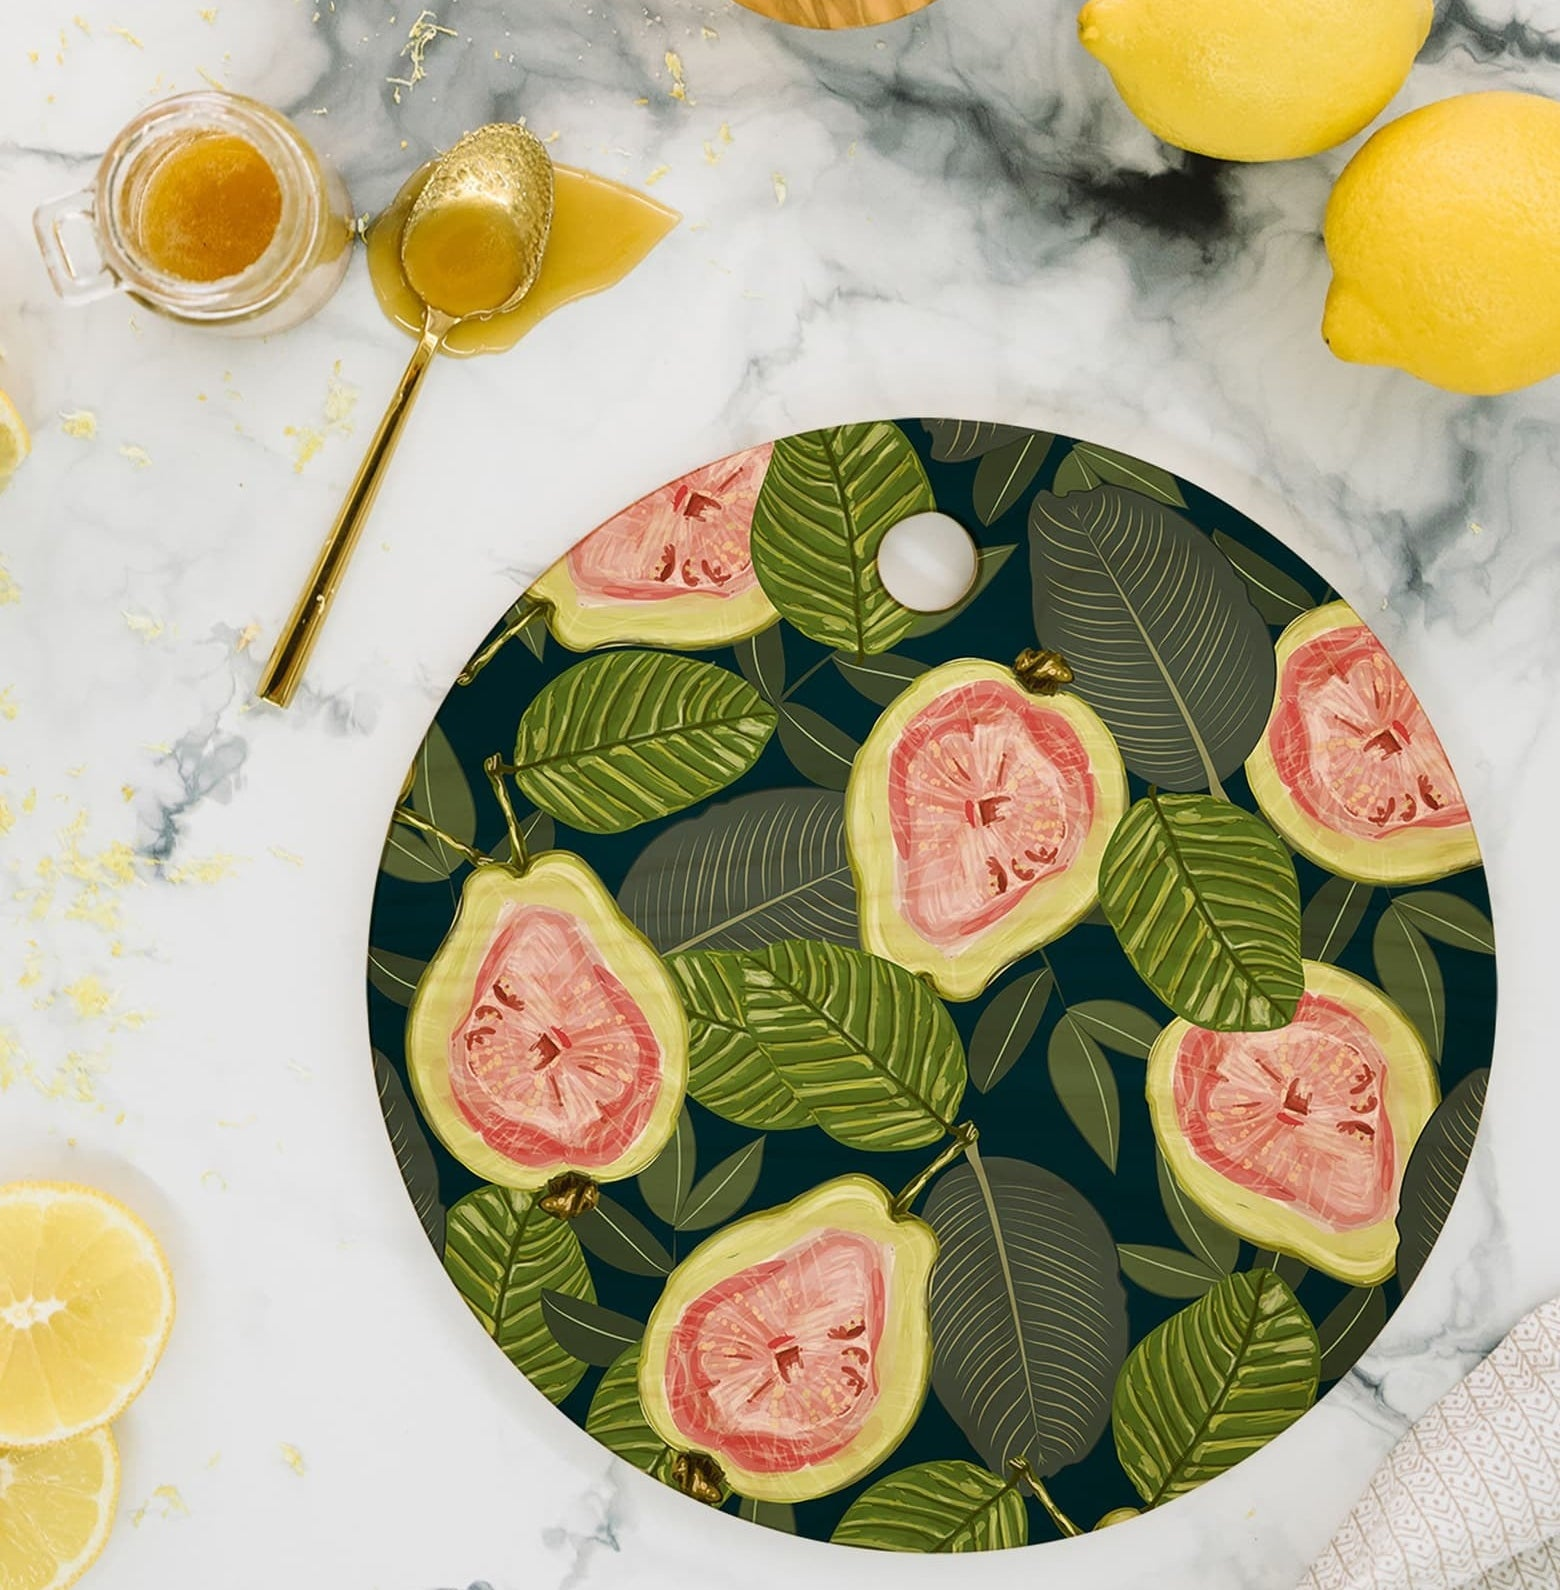 Round cutting board with illustrations of the insides of guavas and green leaves all over